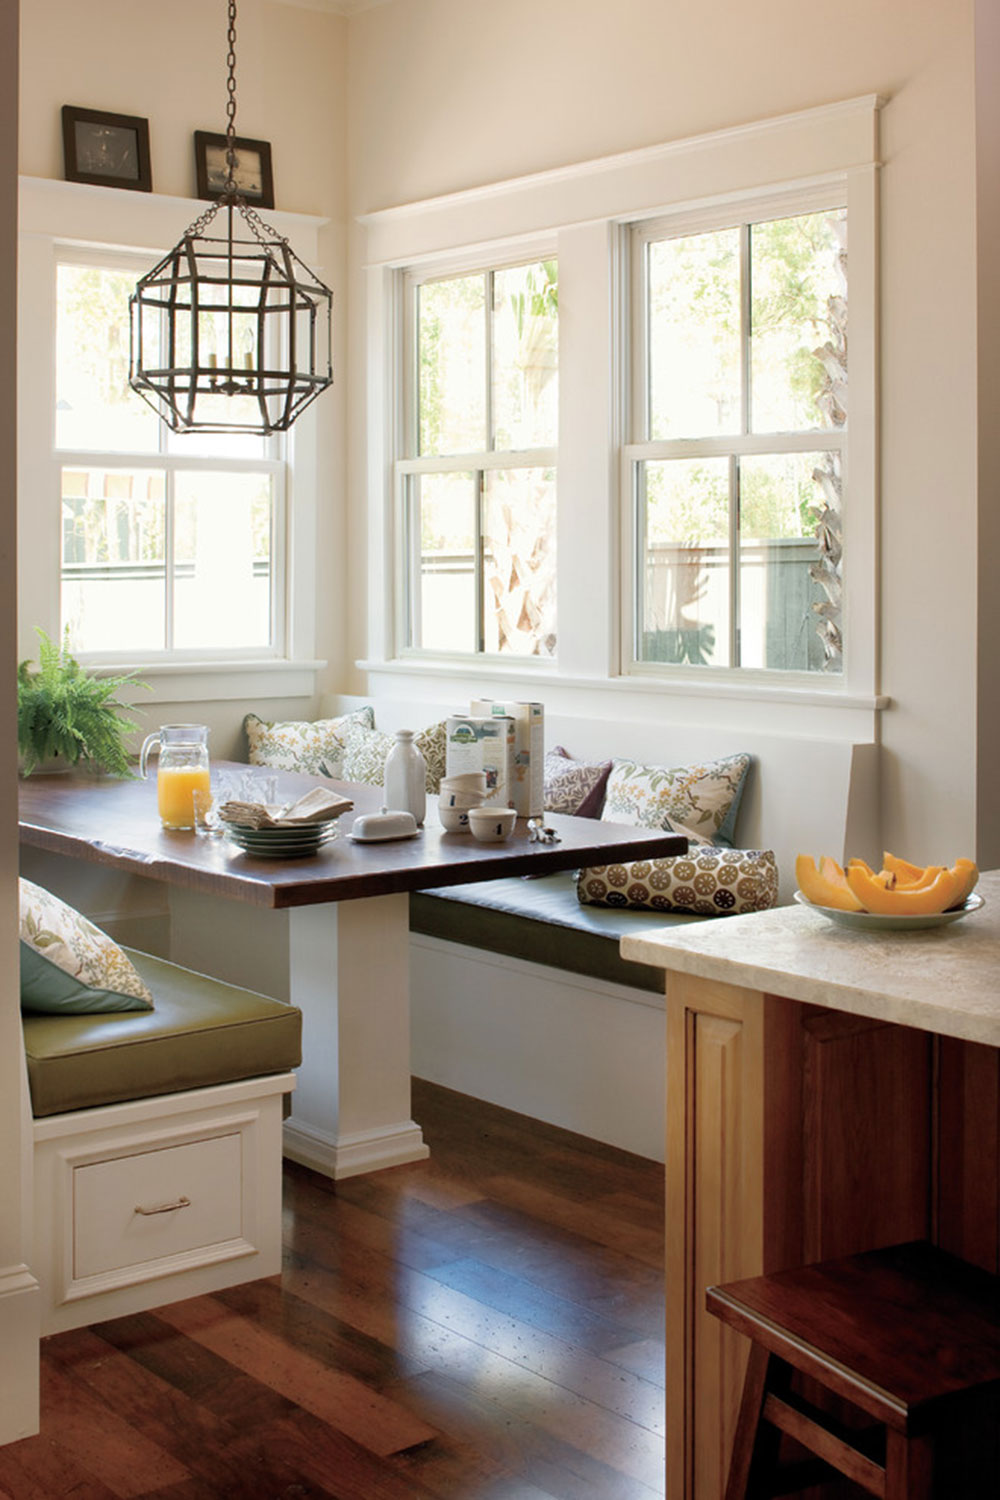 Breakfast-Nook-Design-Ideas-for-Awesome-Mornings1 Breakfast Nook Design-Ideas for Awesome Mornings